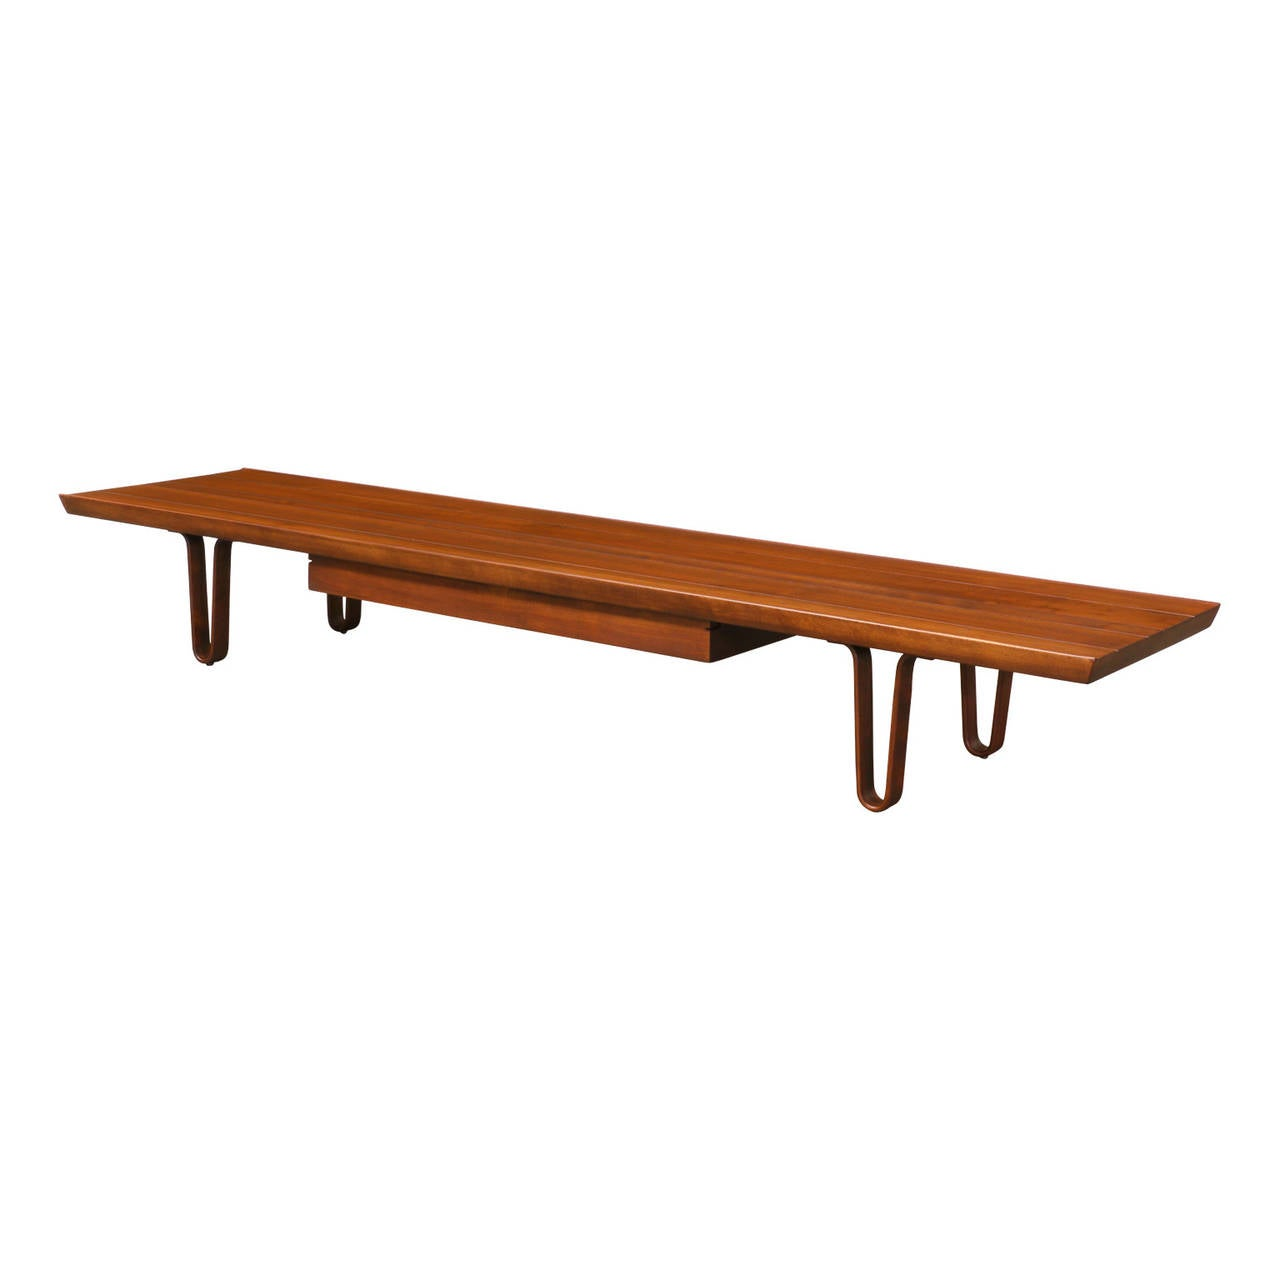 Edward J Wormley Low Profile Bench Or Coffee Table For Dunbar At 1stdibs